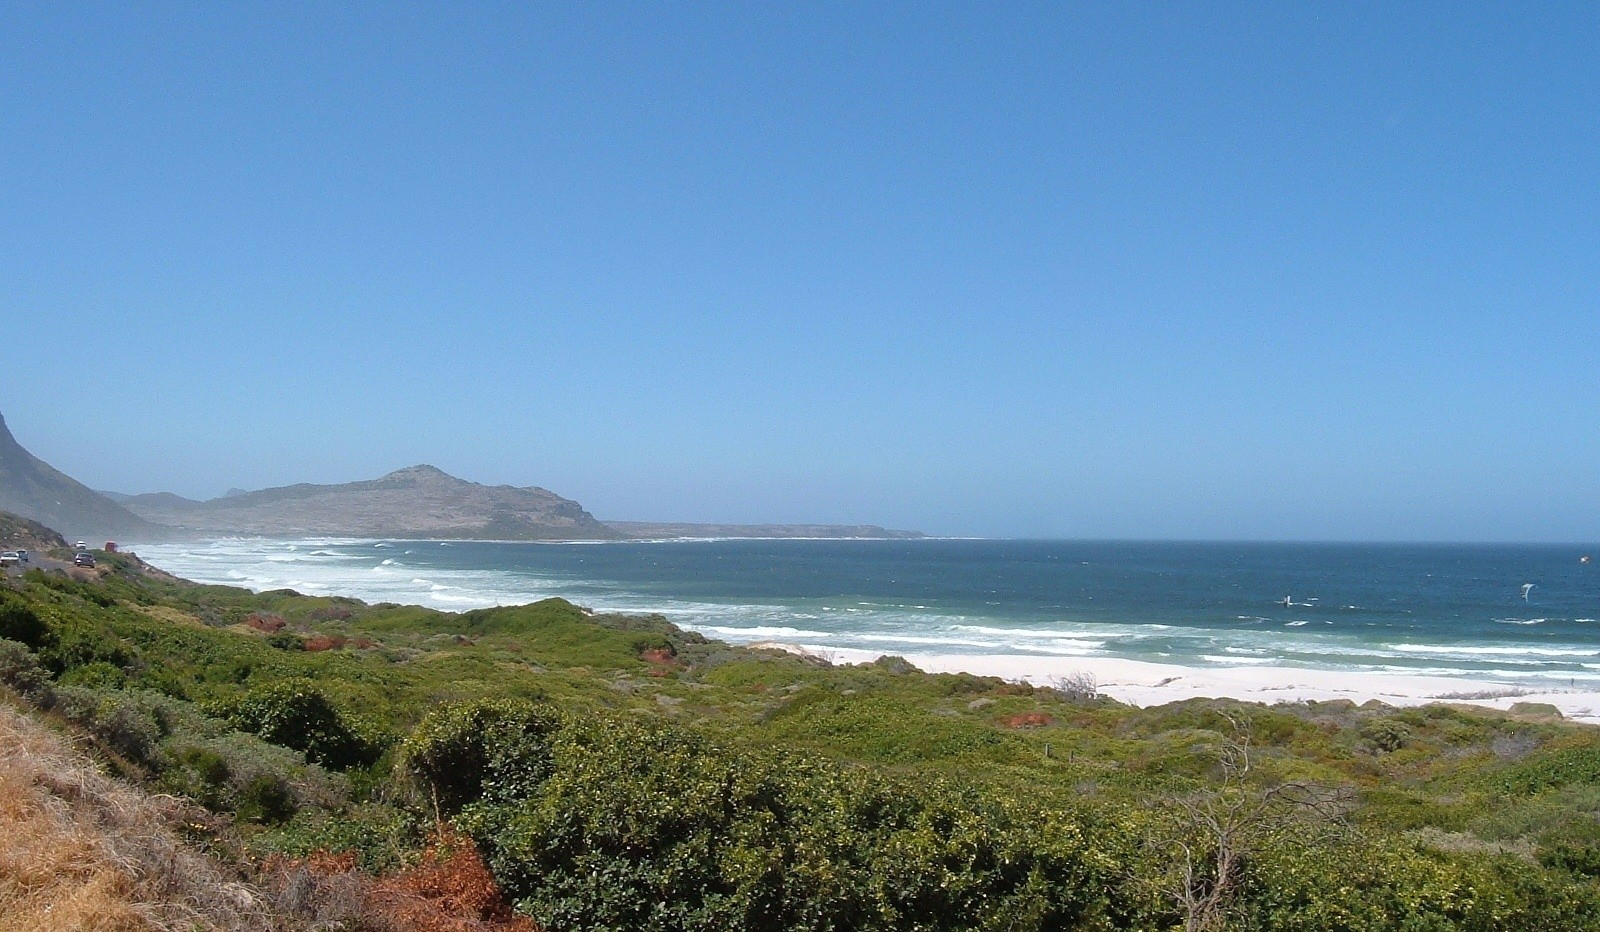 Goofy's photo of Kommetjie